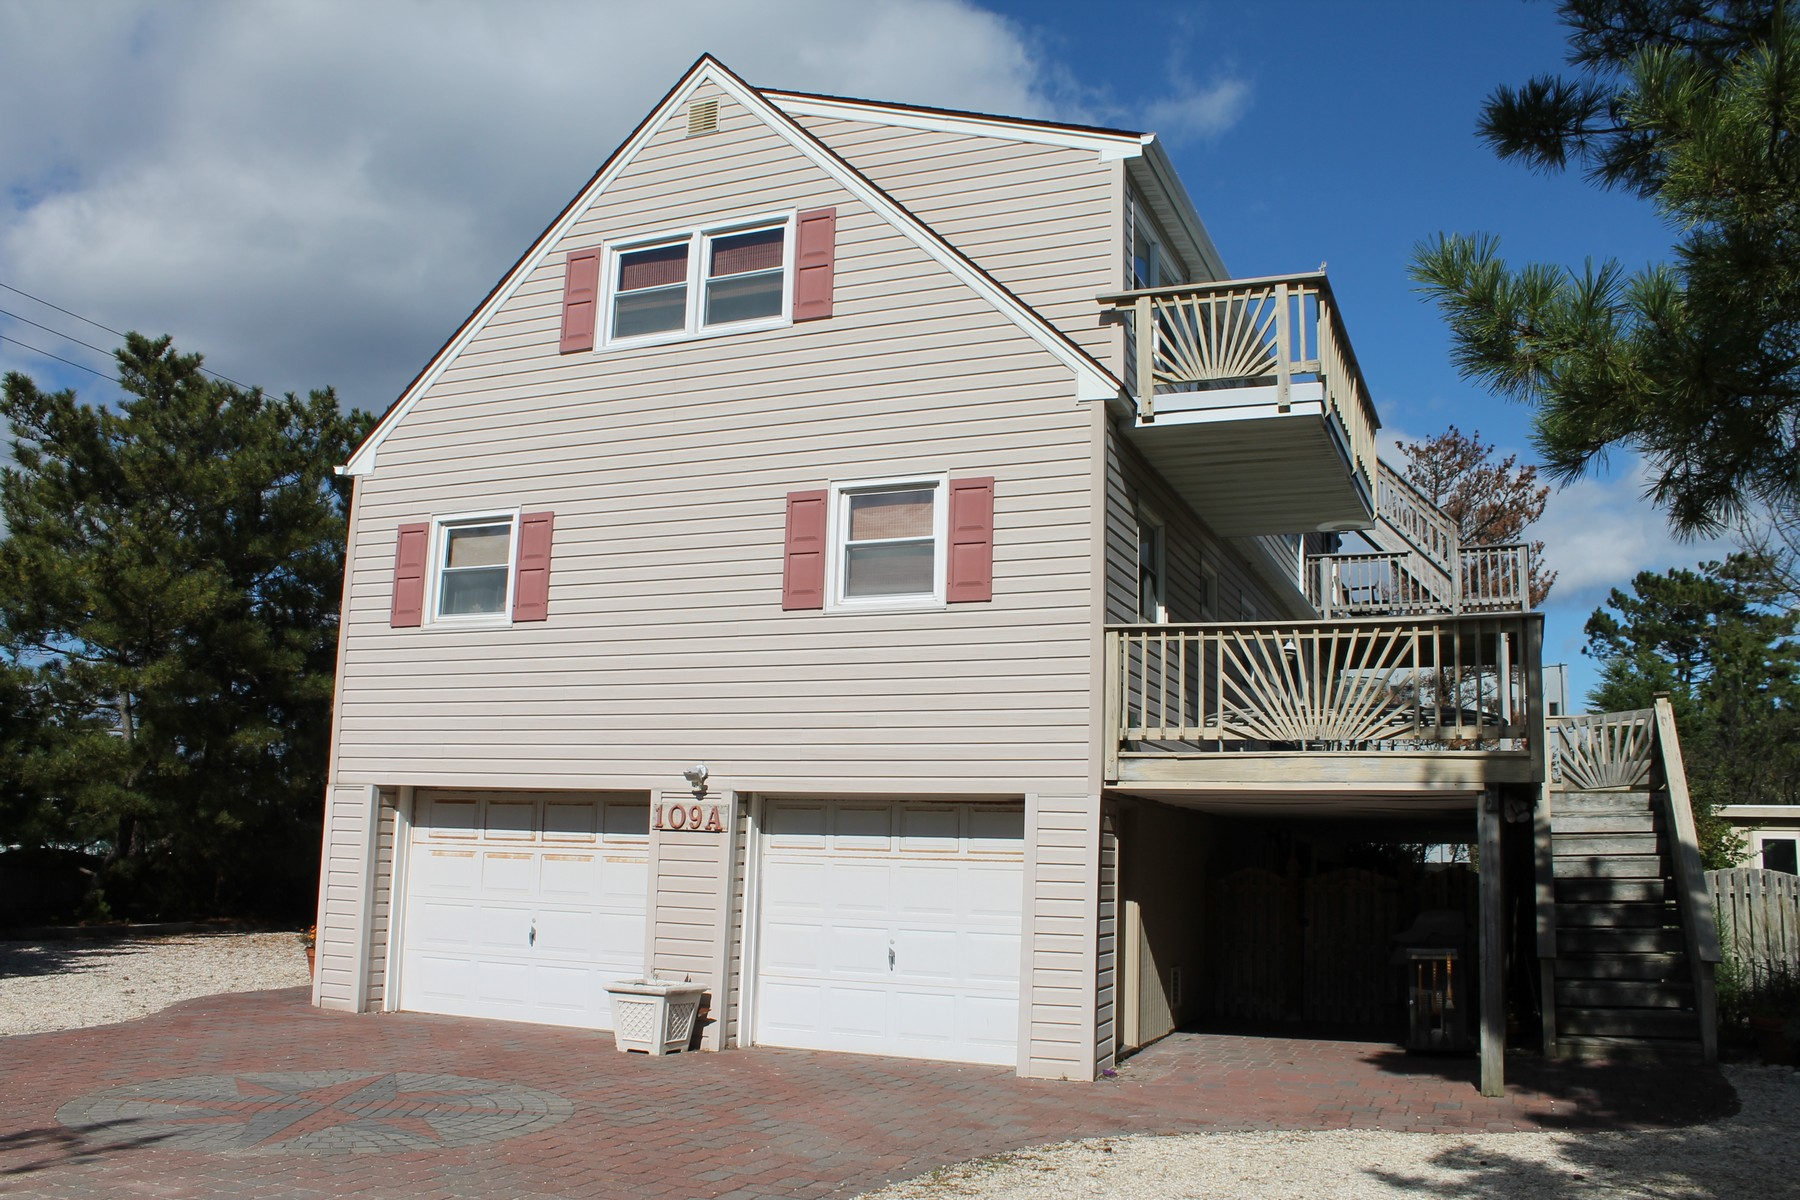 Single Family Home for Sale at SHORE PLEASURE 109A Long Beach Blvd Long Beach Township, New Jersey 08008 United States